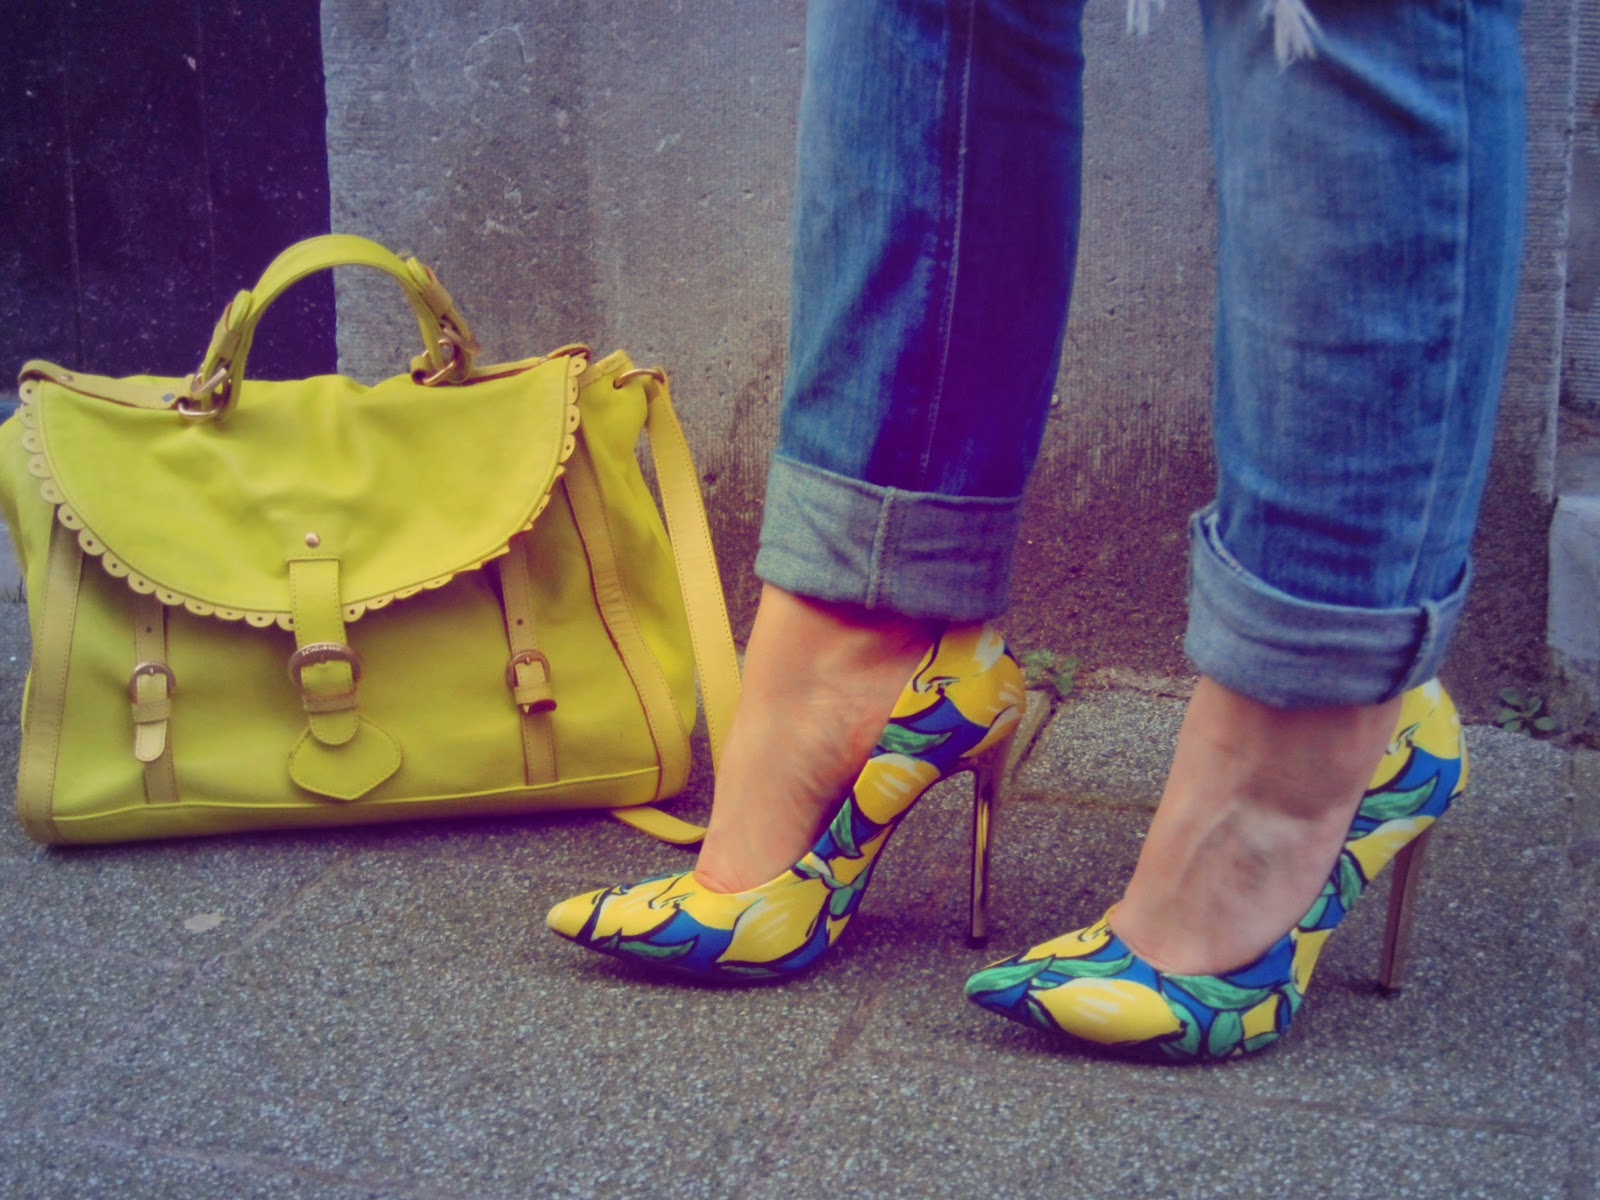 fashion-bridge, fashion-bridge.blogspot.com, fashion-bridge blog, lemon pumps, see by cloe bag, street style, street fashion, street style netherlands